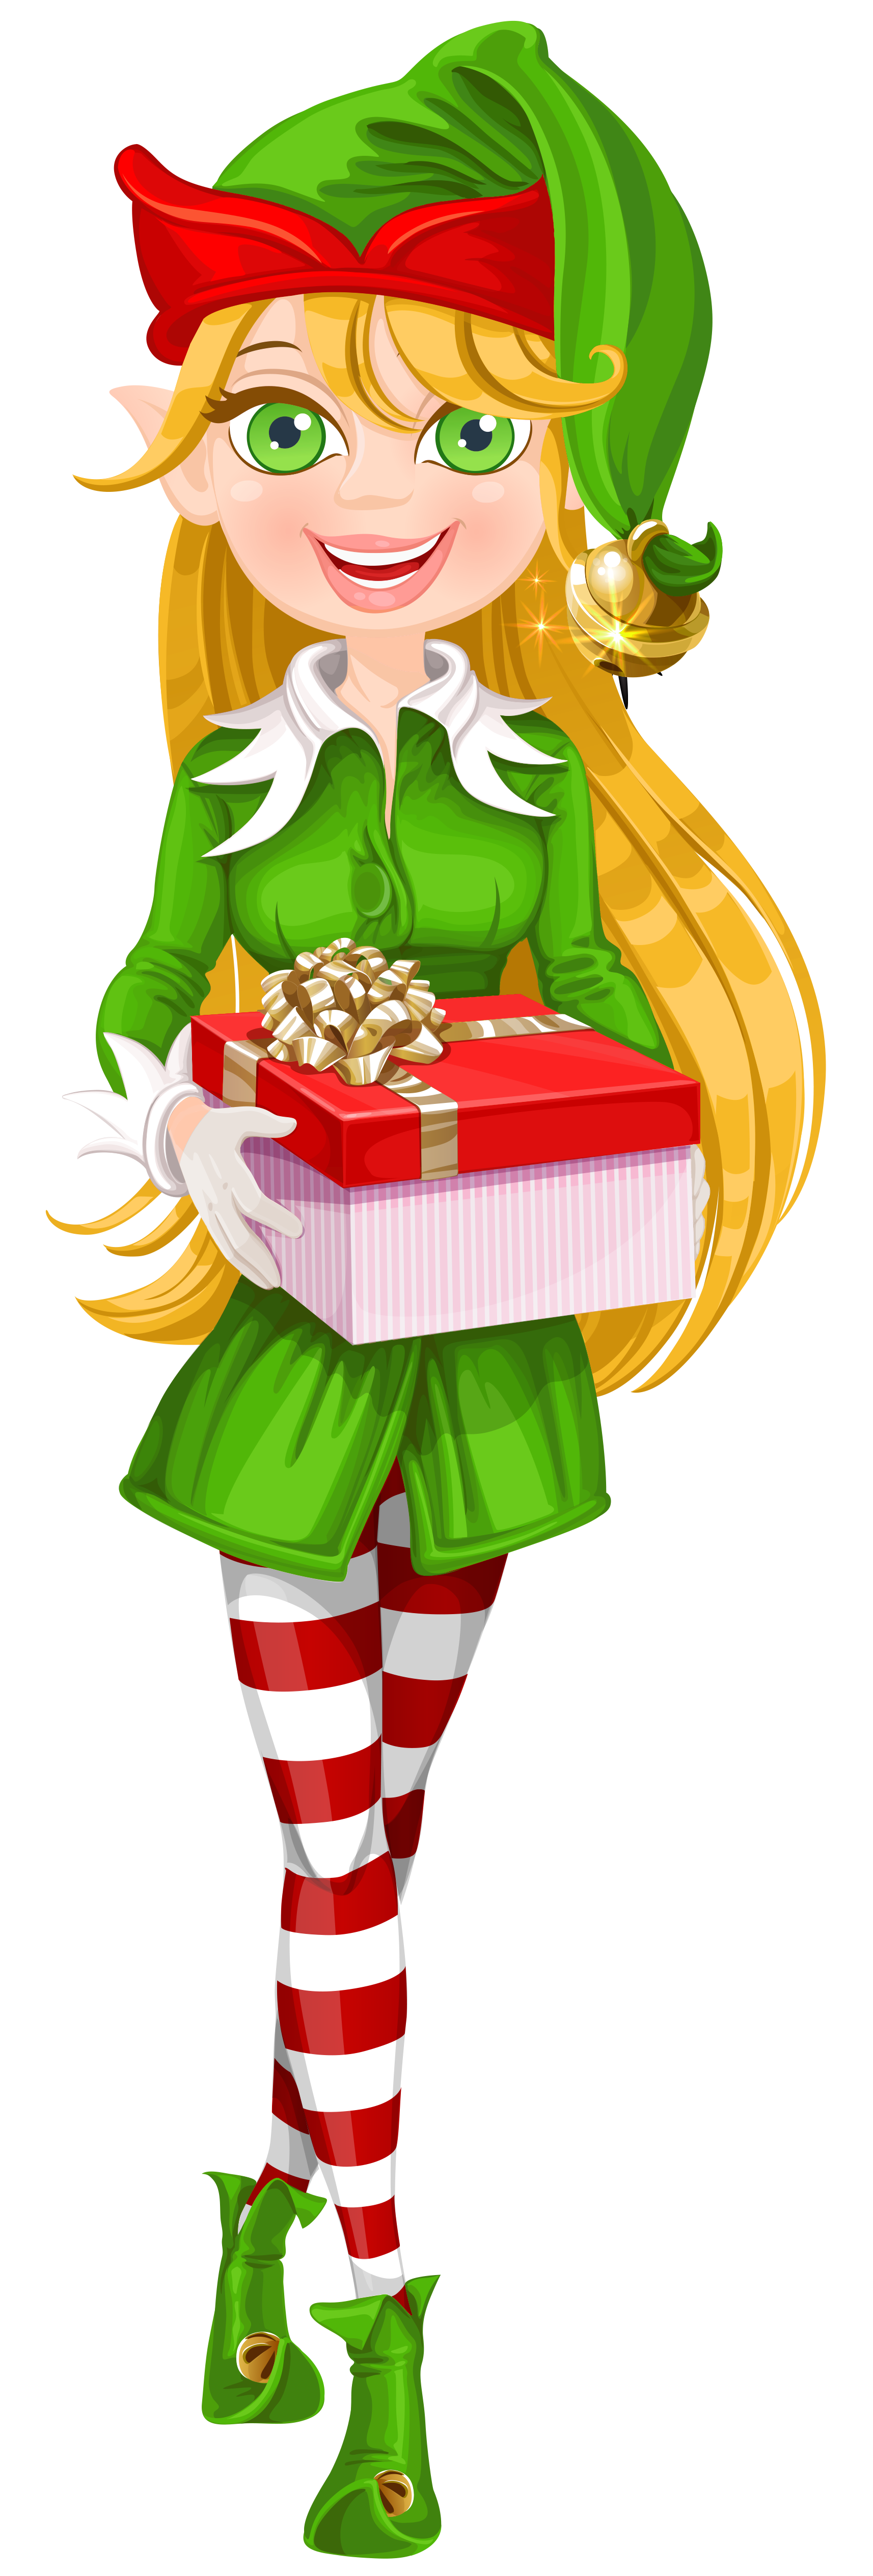 Elf transparent file. Png images pluspng christmas